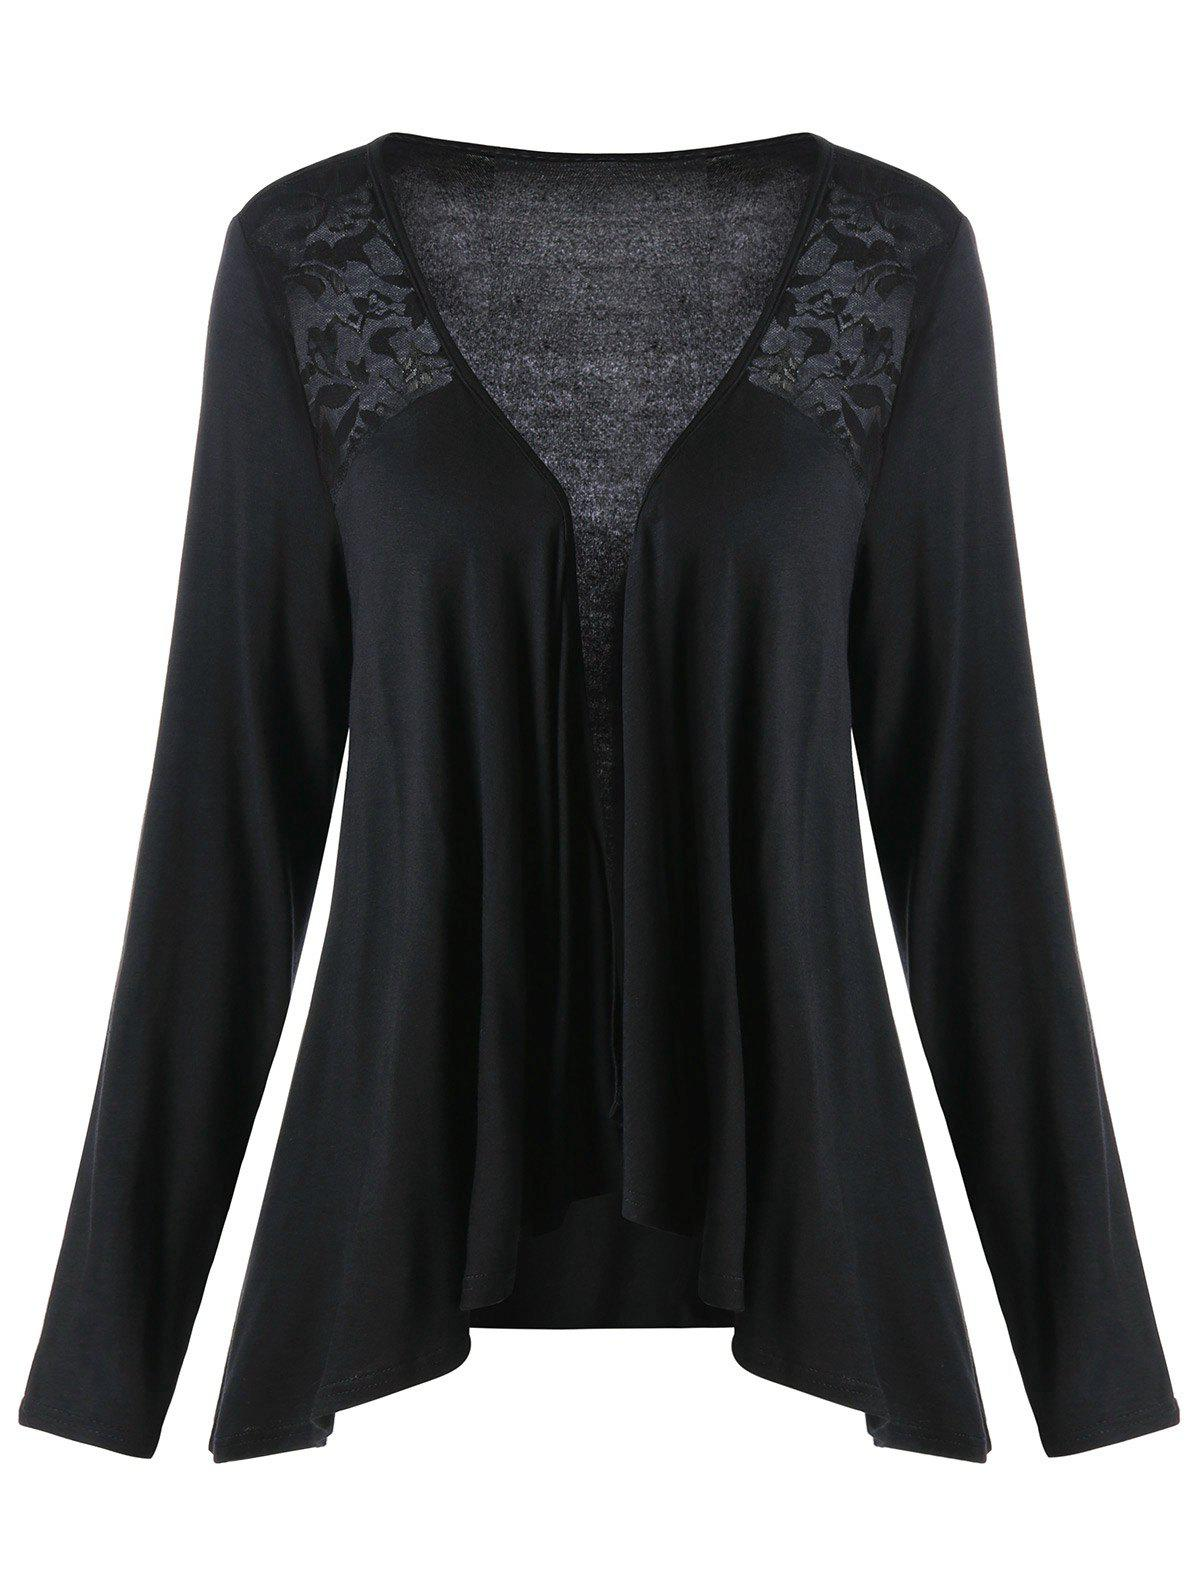 Lace Insert Plus Size Drape CardiganWOMEN<br><br>Size: XL; Color: BLACK; Type: Cardigans; Material: Cotton,Polyester; Sleeve Length: Full; Collar: Collarless; Style: Casual; Season: Fall,Spring; Pattern Type: Solid; Weight: 0.3080kg; Package Contents: 1 x Cardigan;